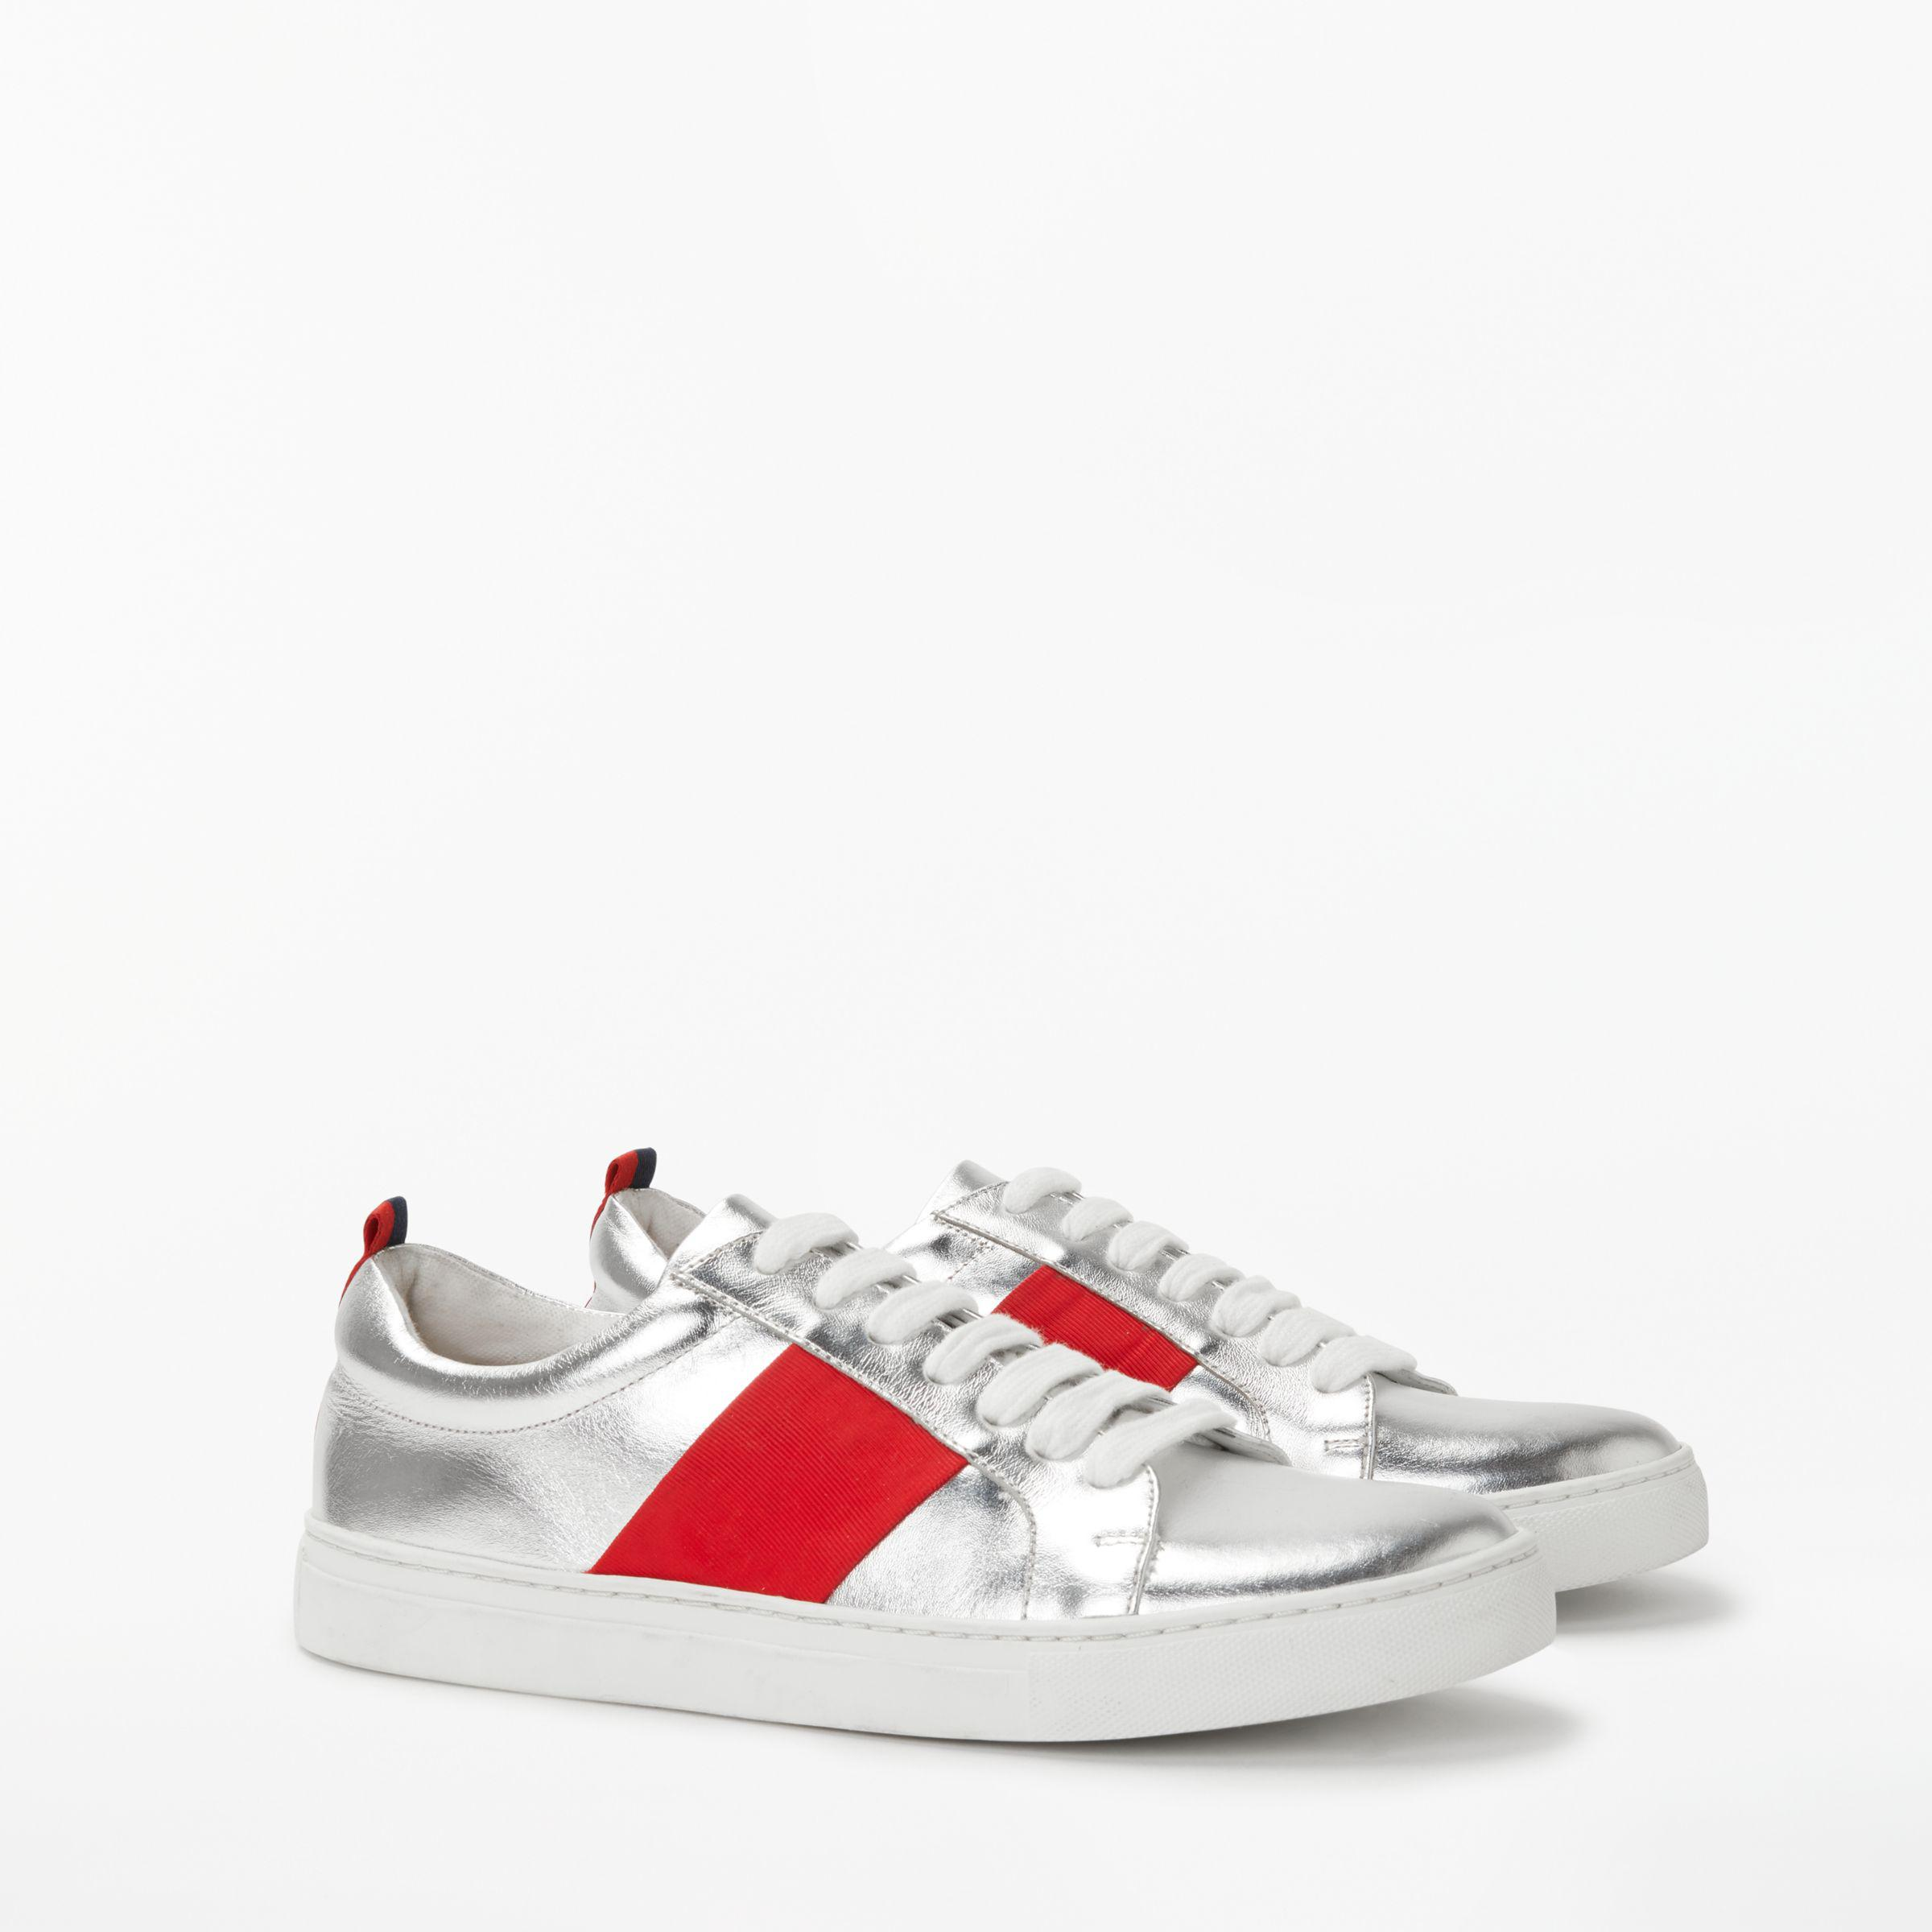 Boden Leather Classic Trainers in Silver Metallic (Metallic)